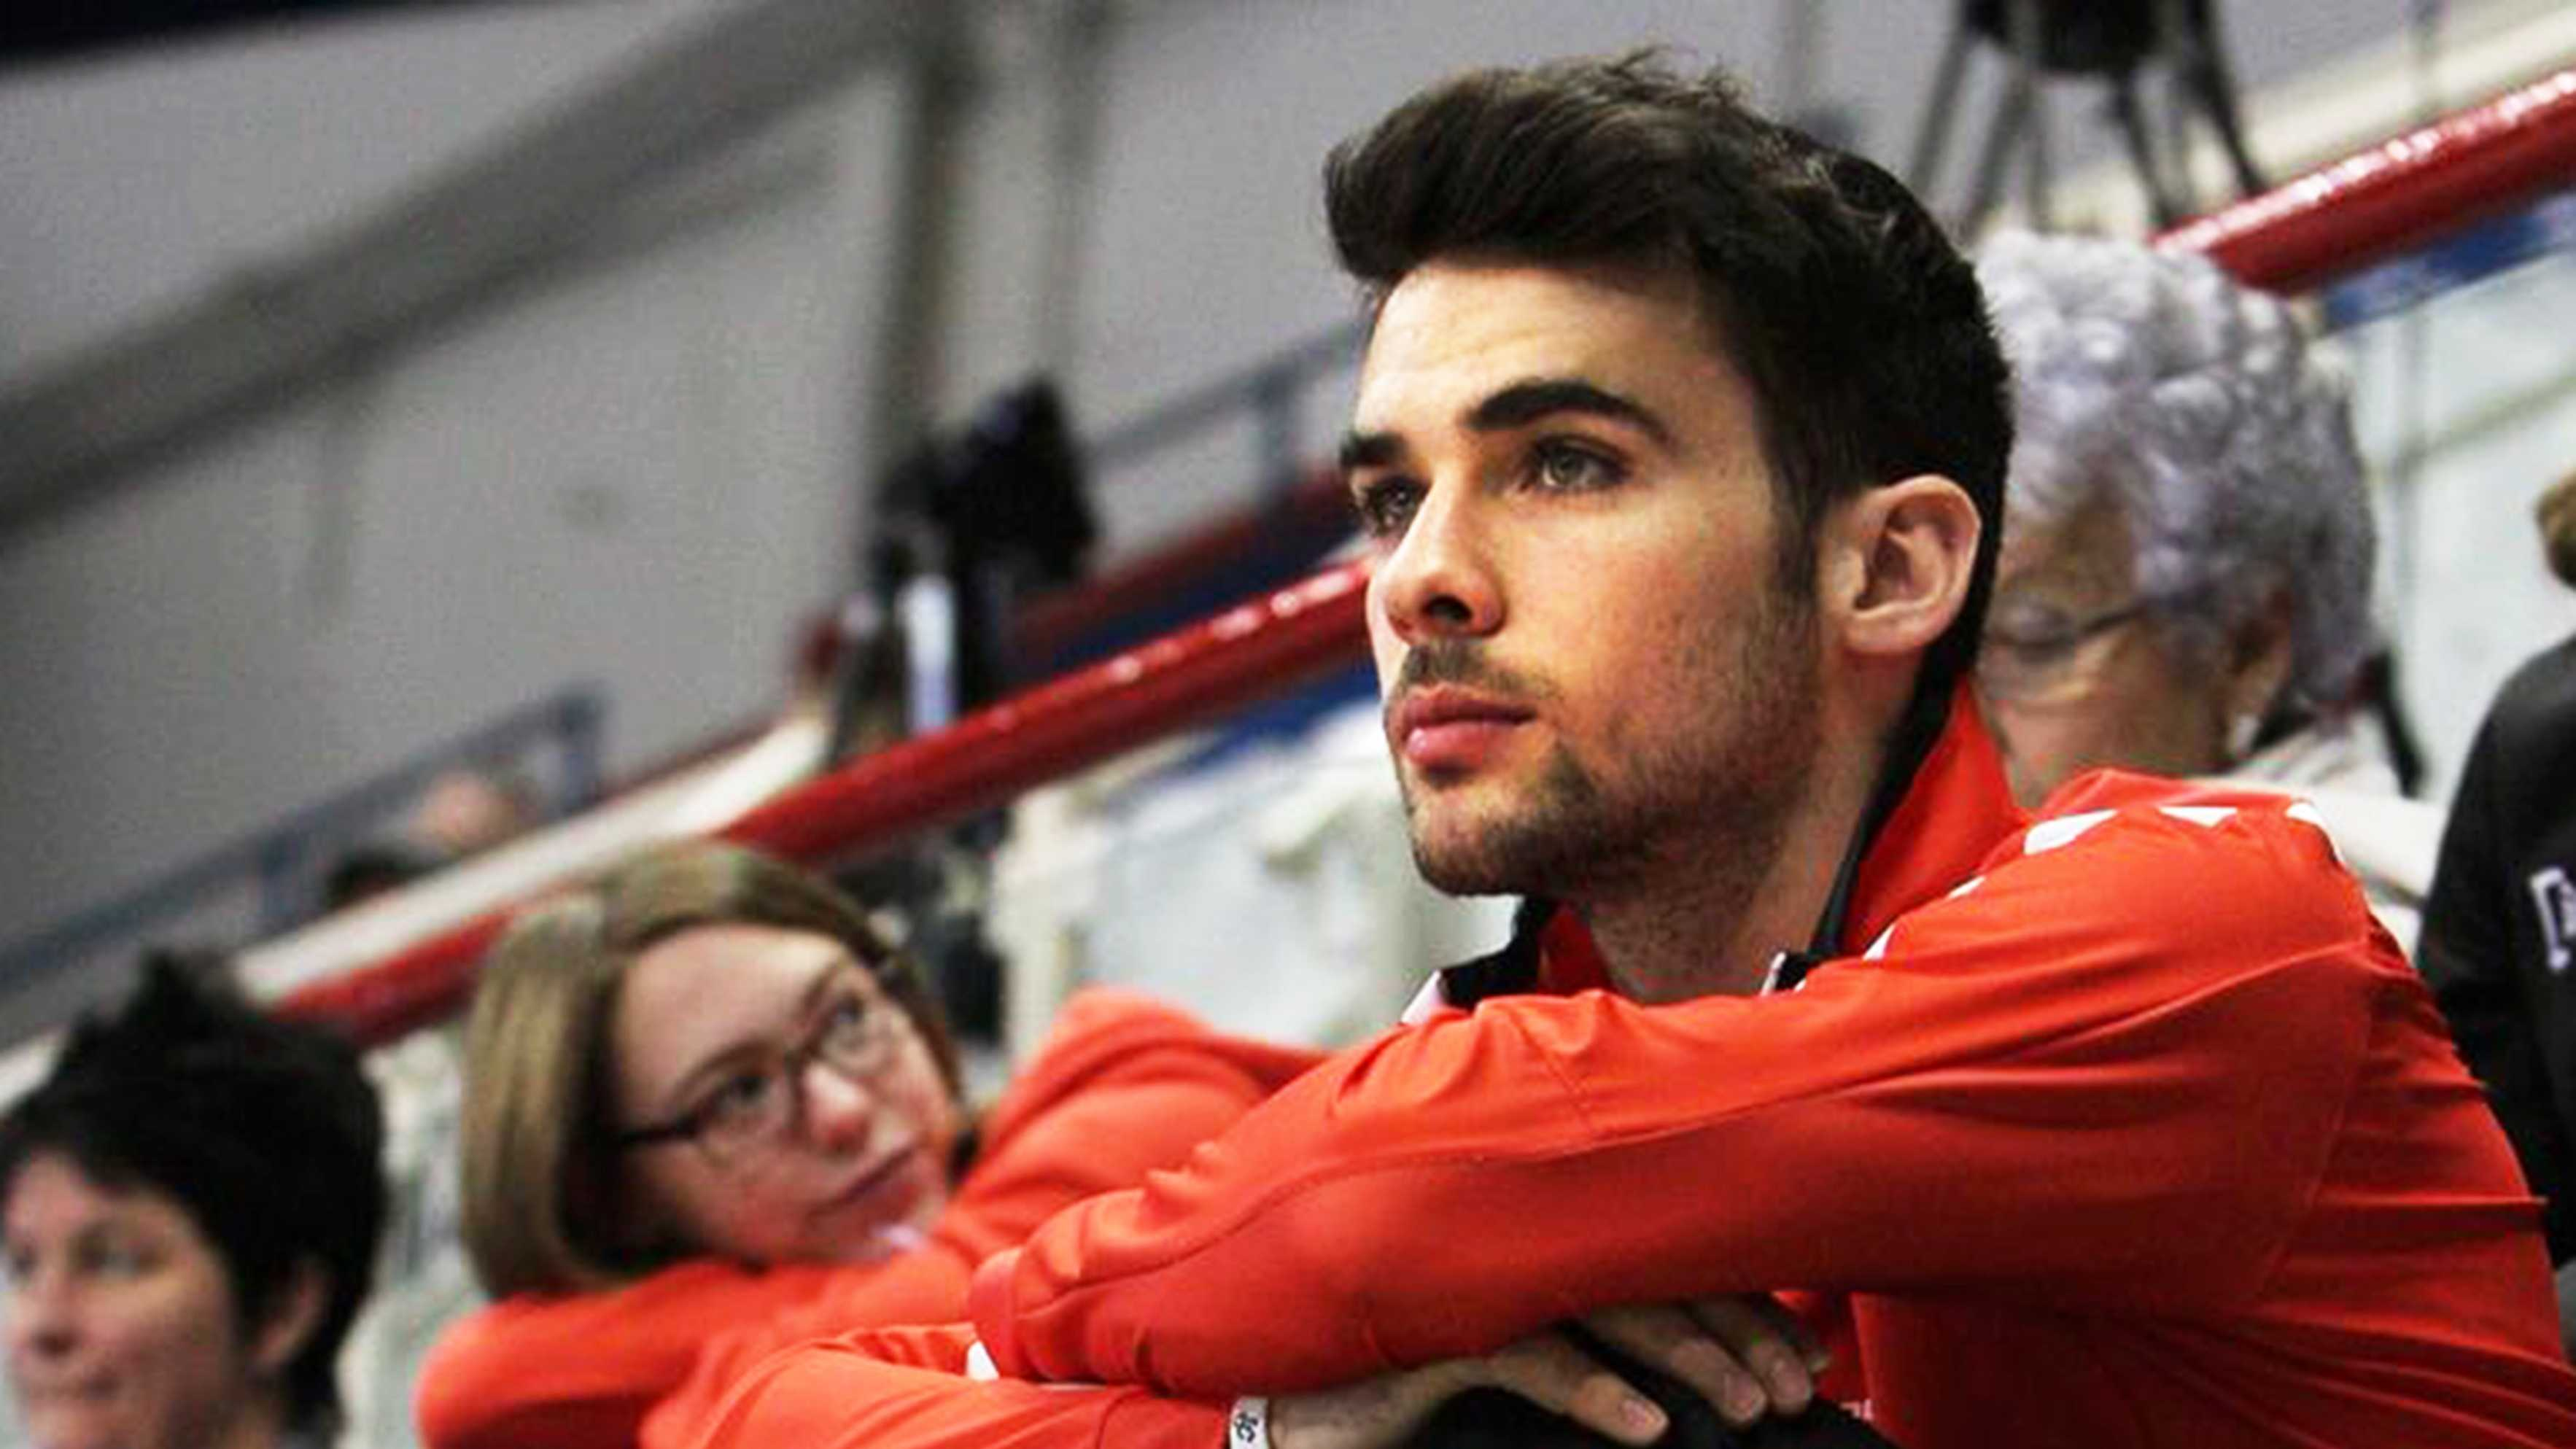 Francois Hamelin is a 27-year-old short track speed skater from Canada.